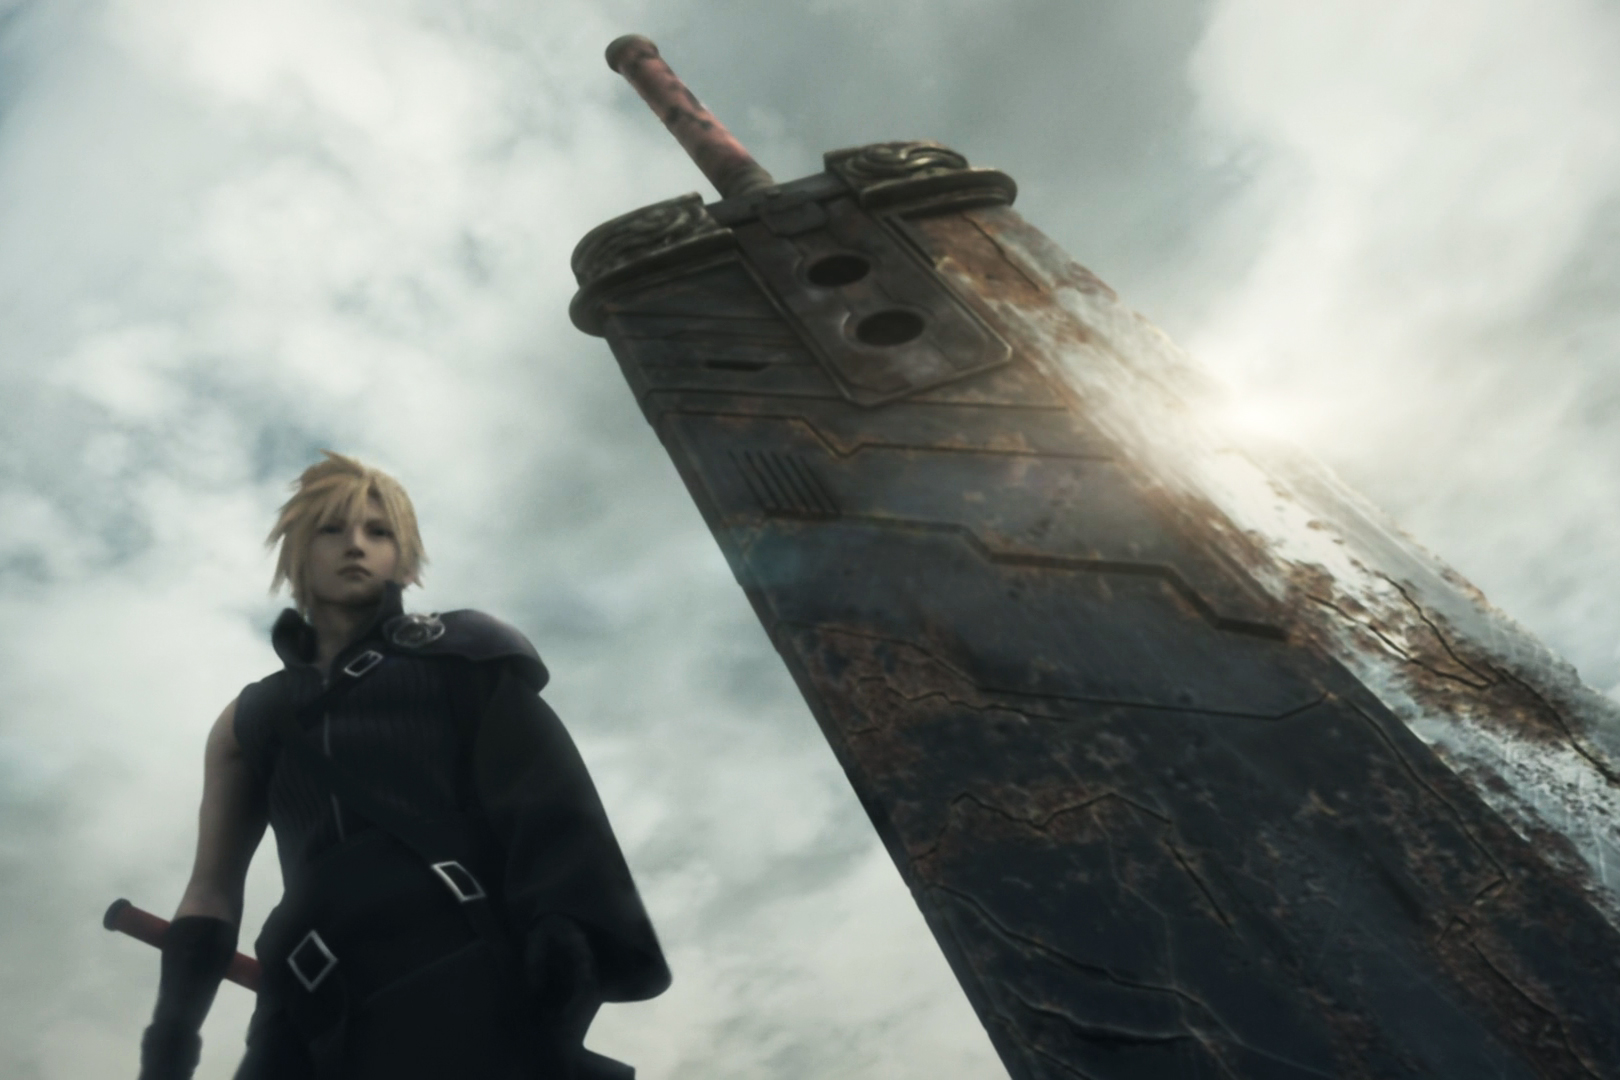 'Final Fantasy VII' Remake E3 2015 Trailer